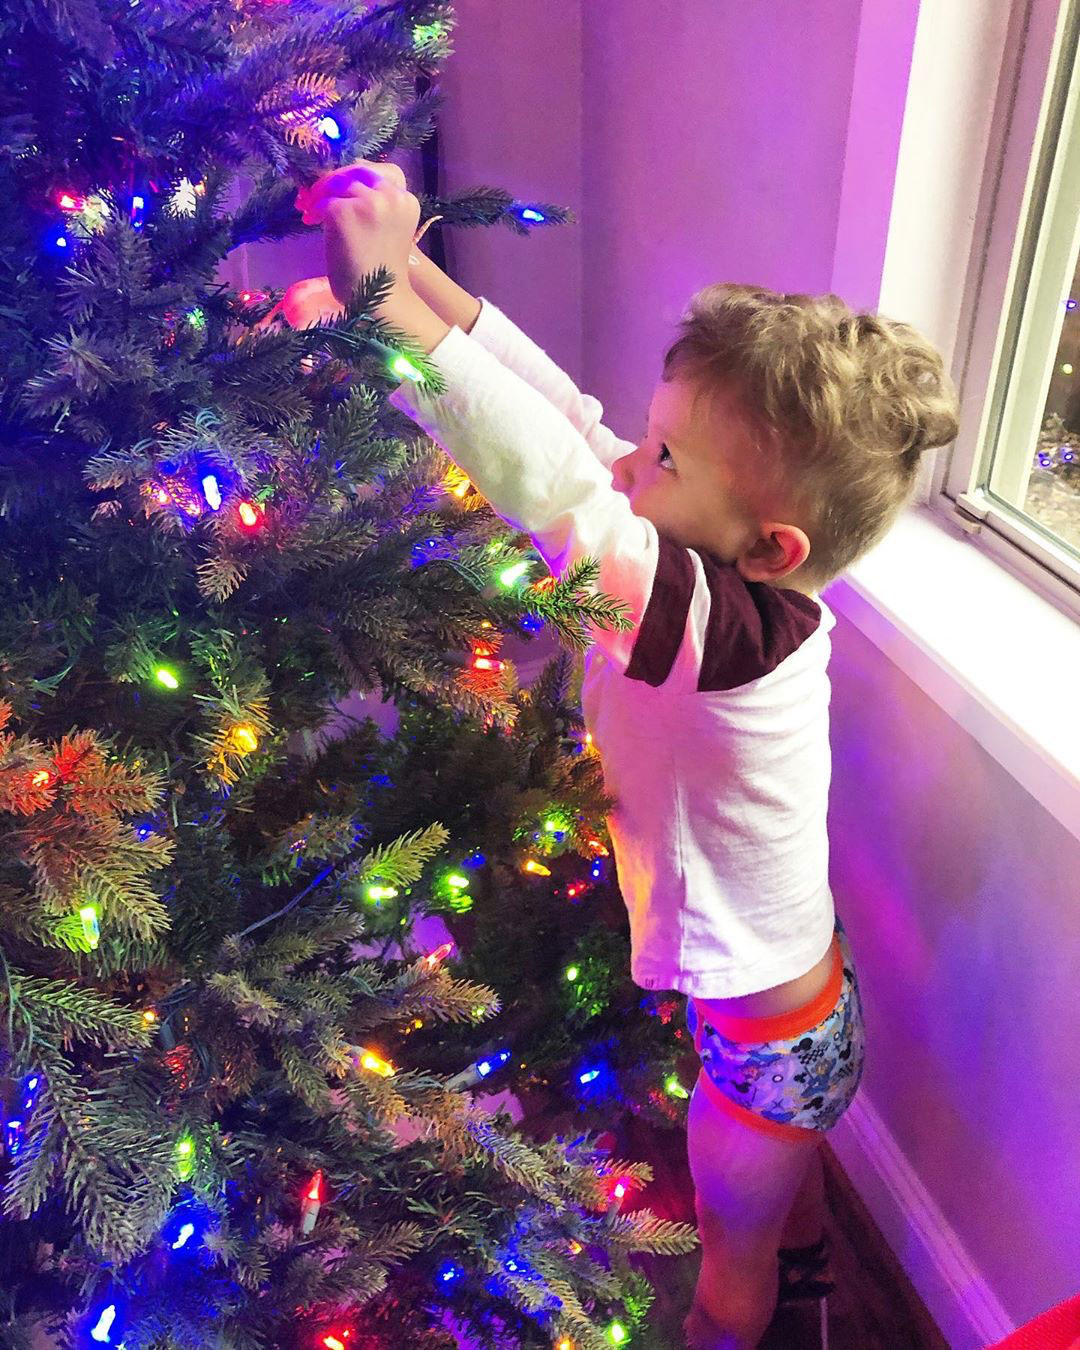 Celebrity Kids Helping Pick Decorate Christmas Trees Pics